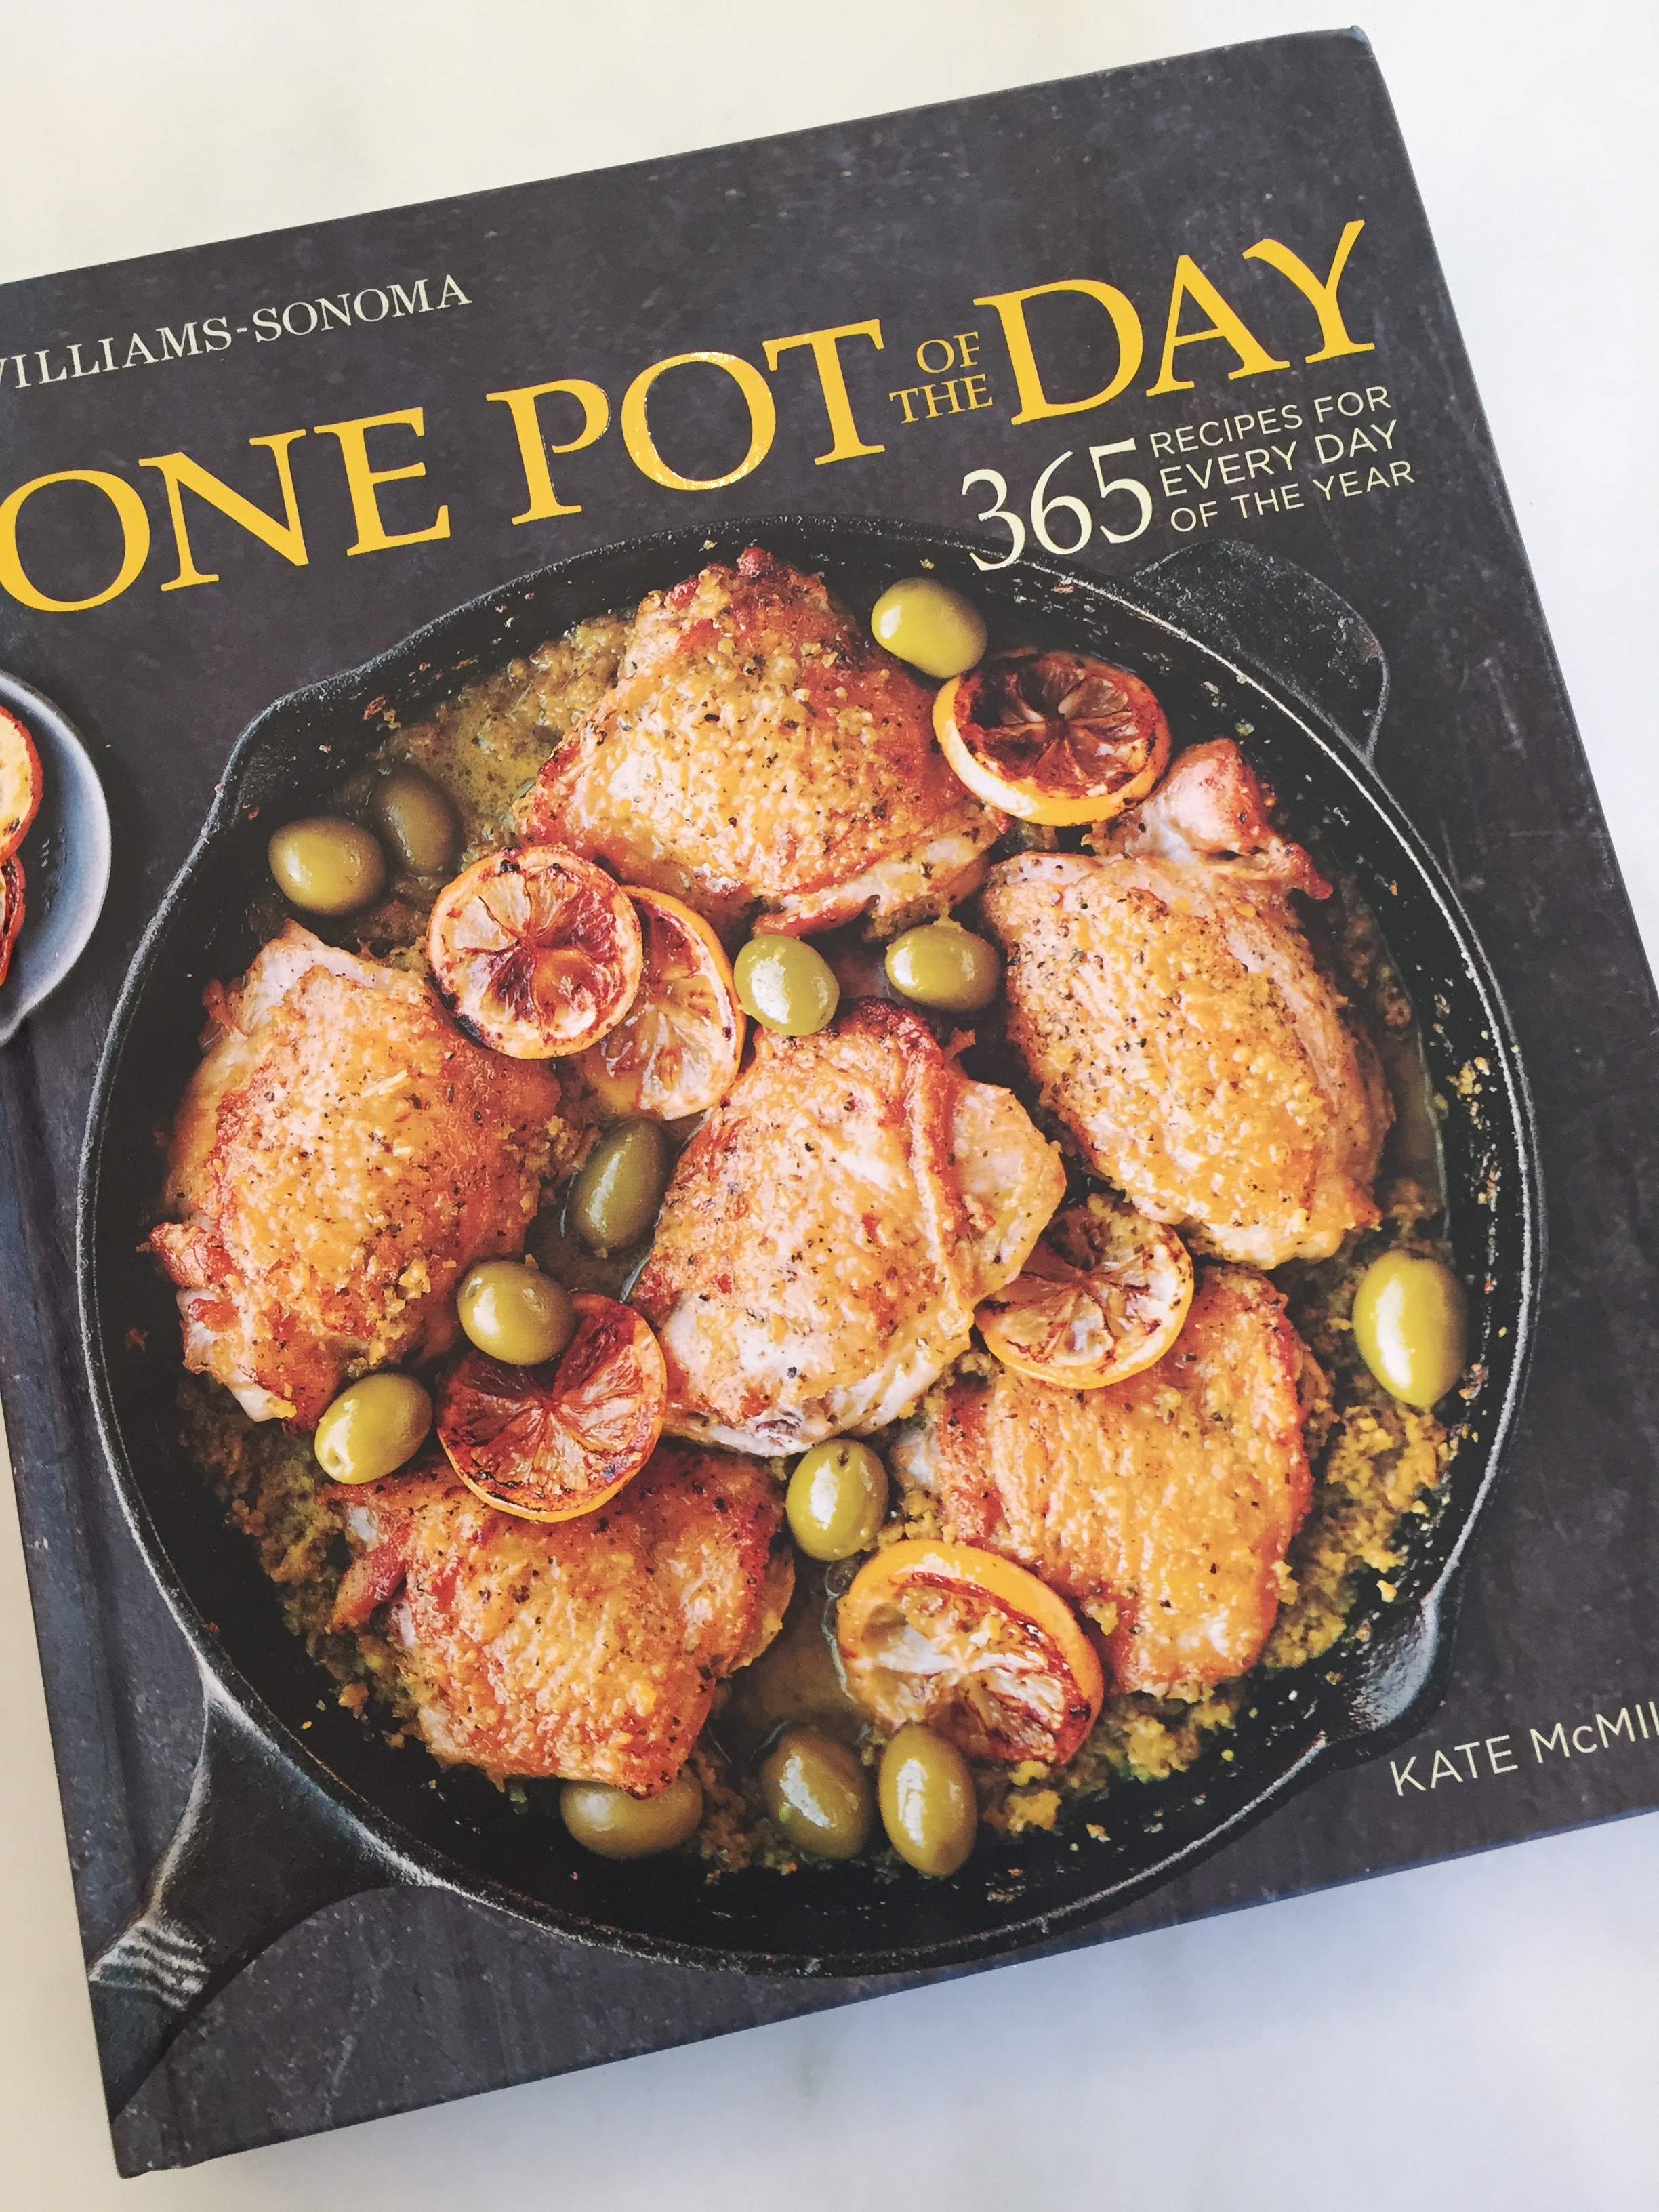 One Pot of the Day: 365 Recipes for Every Day of the Year